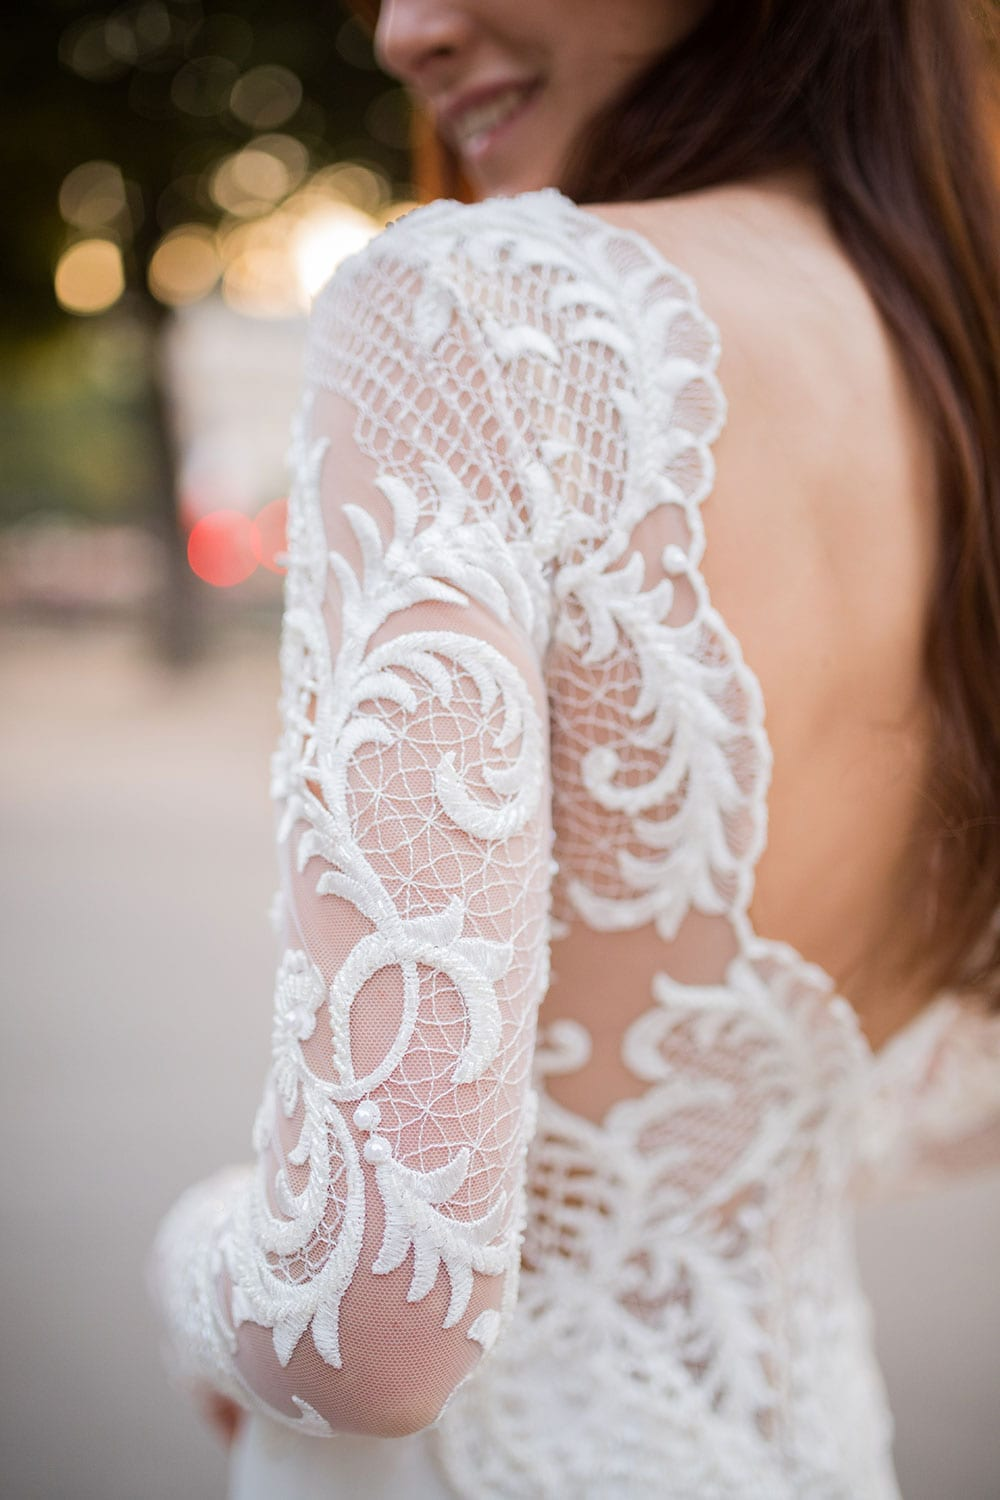 Model wearing Vinka Design Katrina Wedding Dress, a Sheer Beaded Lace Wedding Gown with long sleeves and a train close up of back and sleeve lace detail